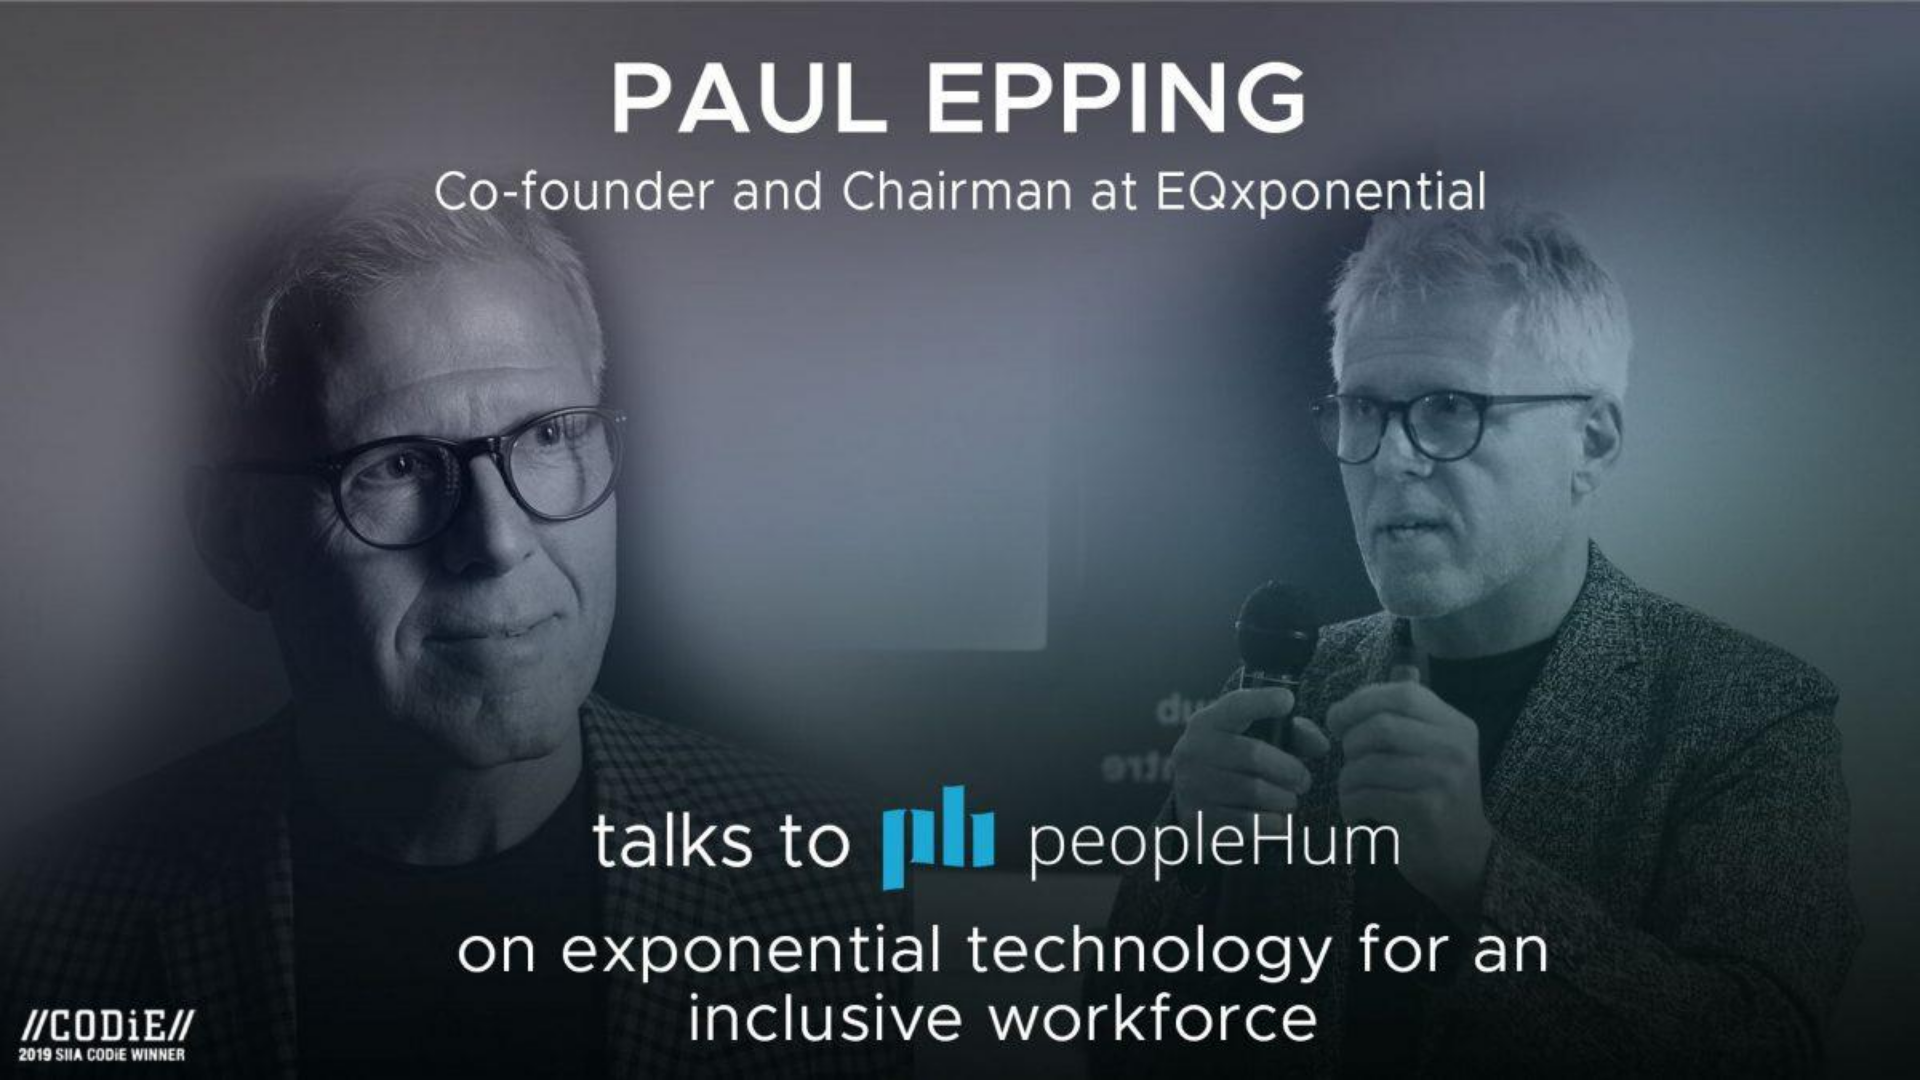 Exponential technology for an inclusive workforce- Paul Epping [Interview]